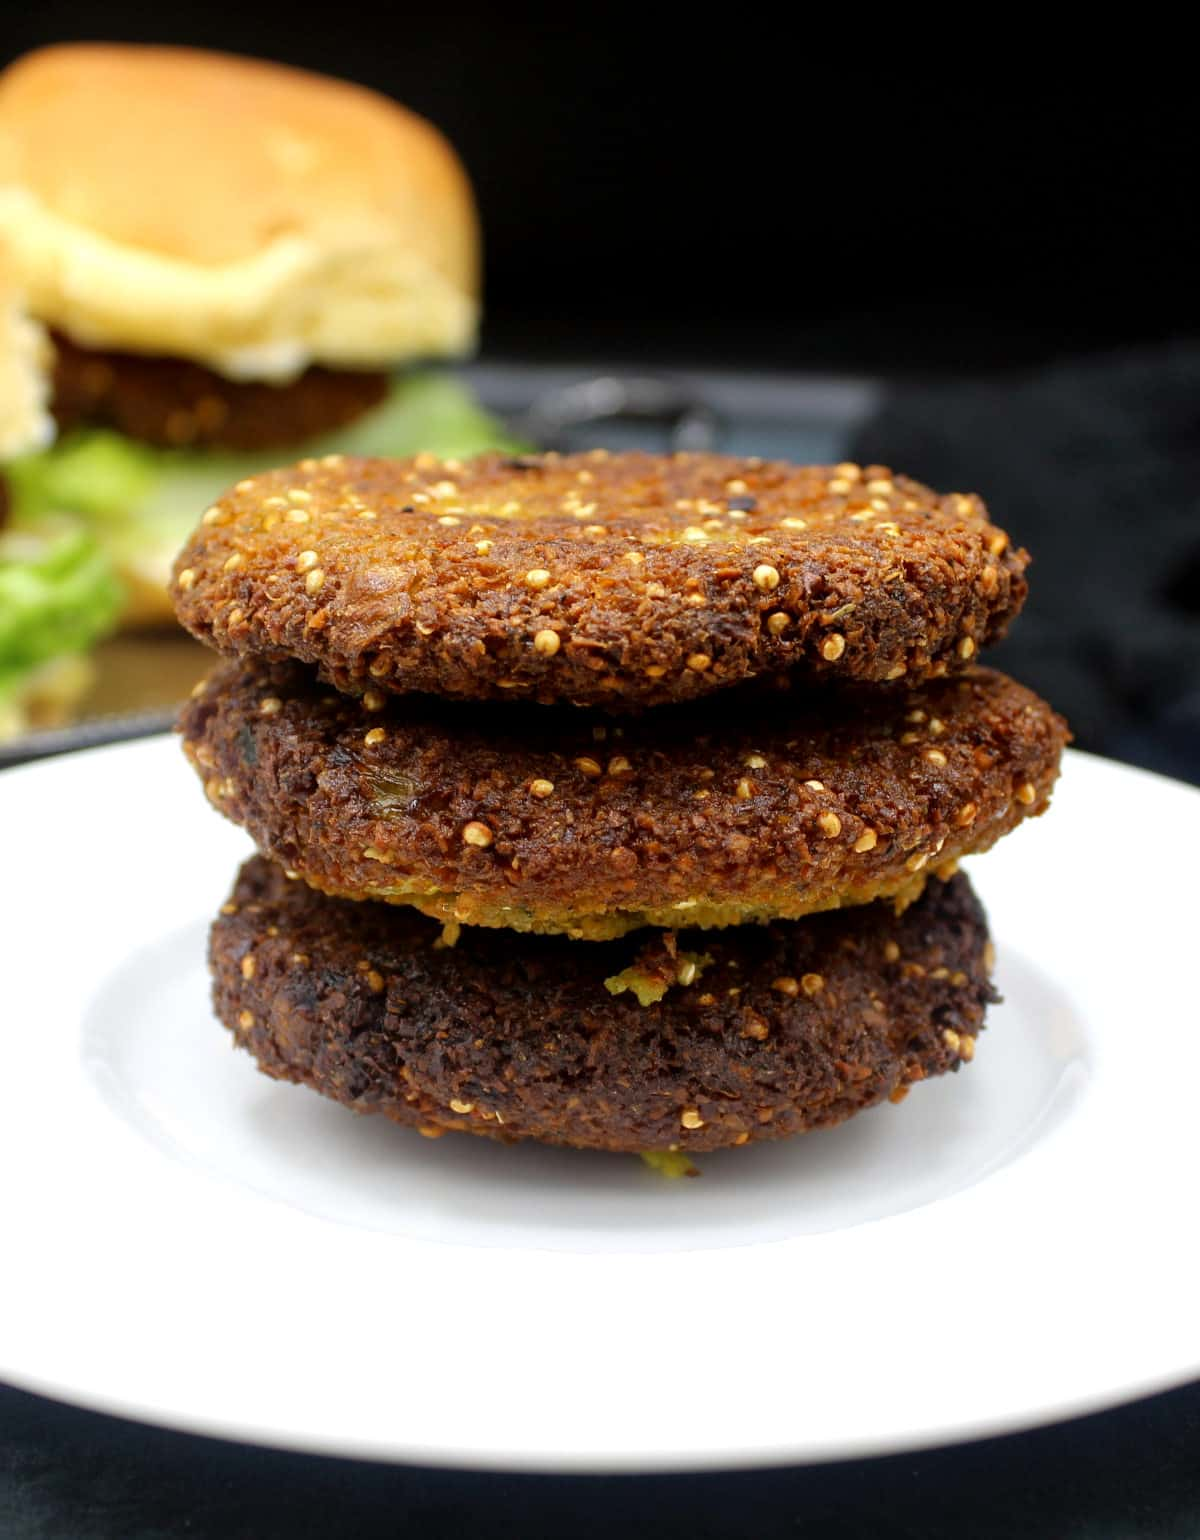 Photo of a stack of three falafel burger patties.